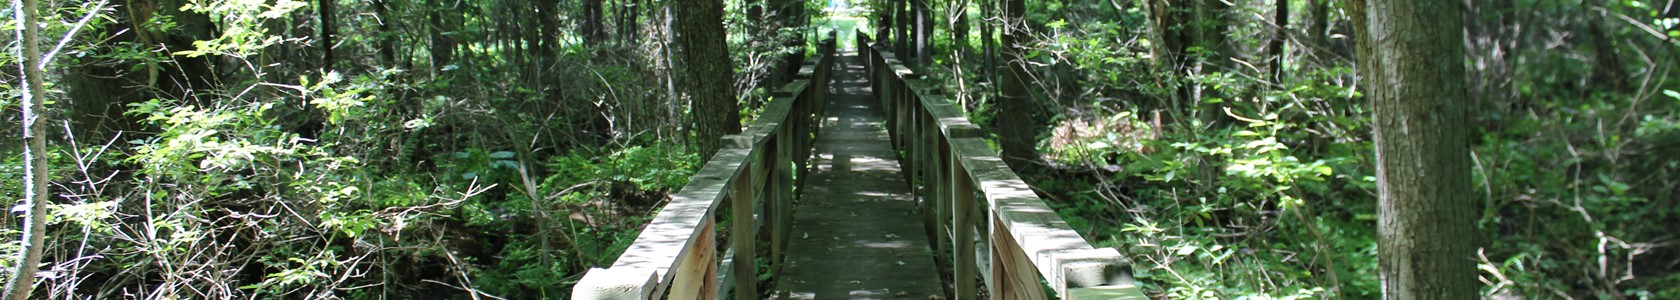 MCC Nature Trails bridge